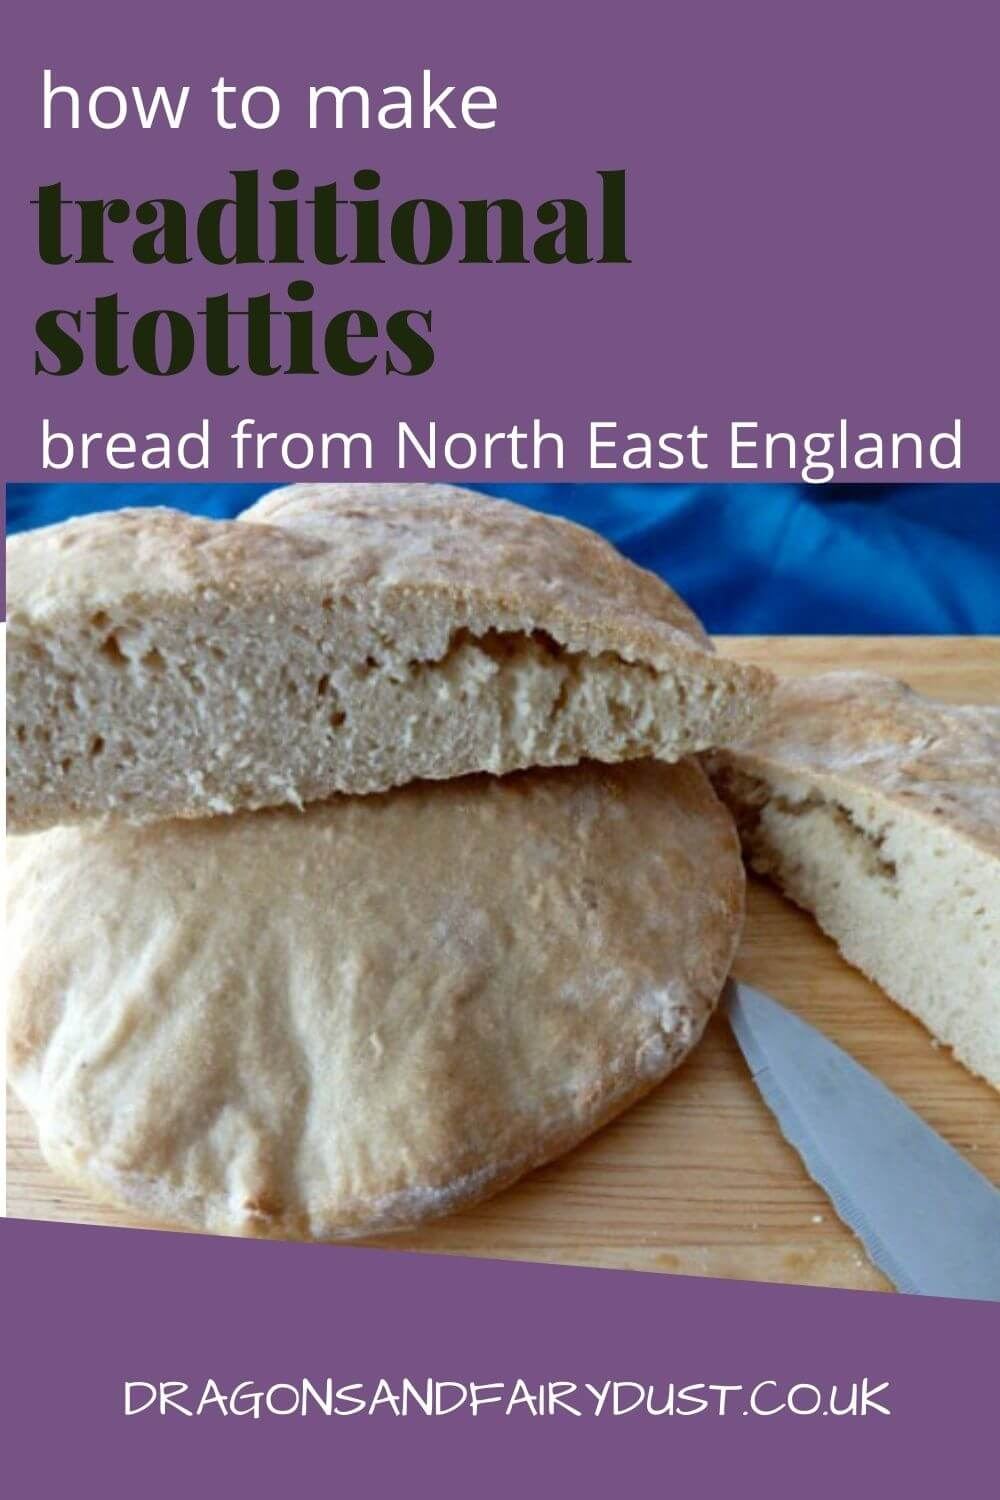 A traditional stotty is a disc of bread that makes slowly in the oven. They are really easy to make